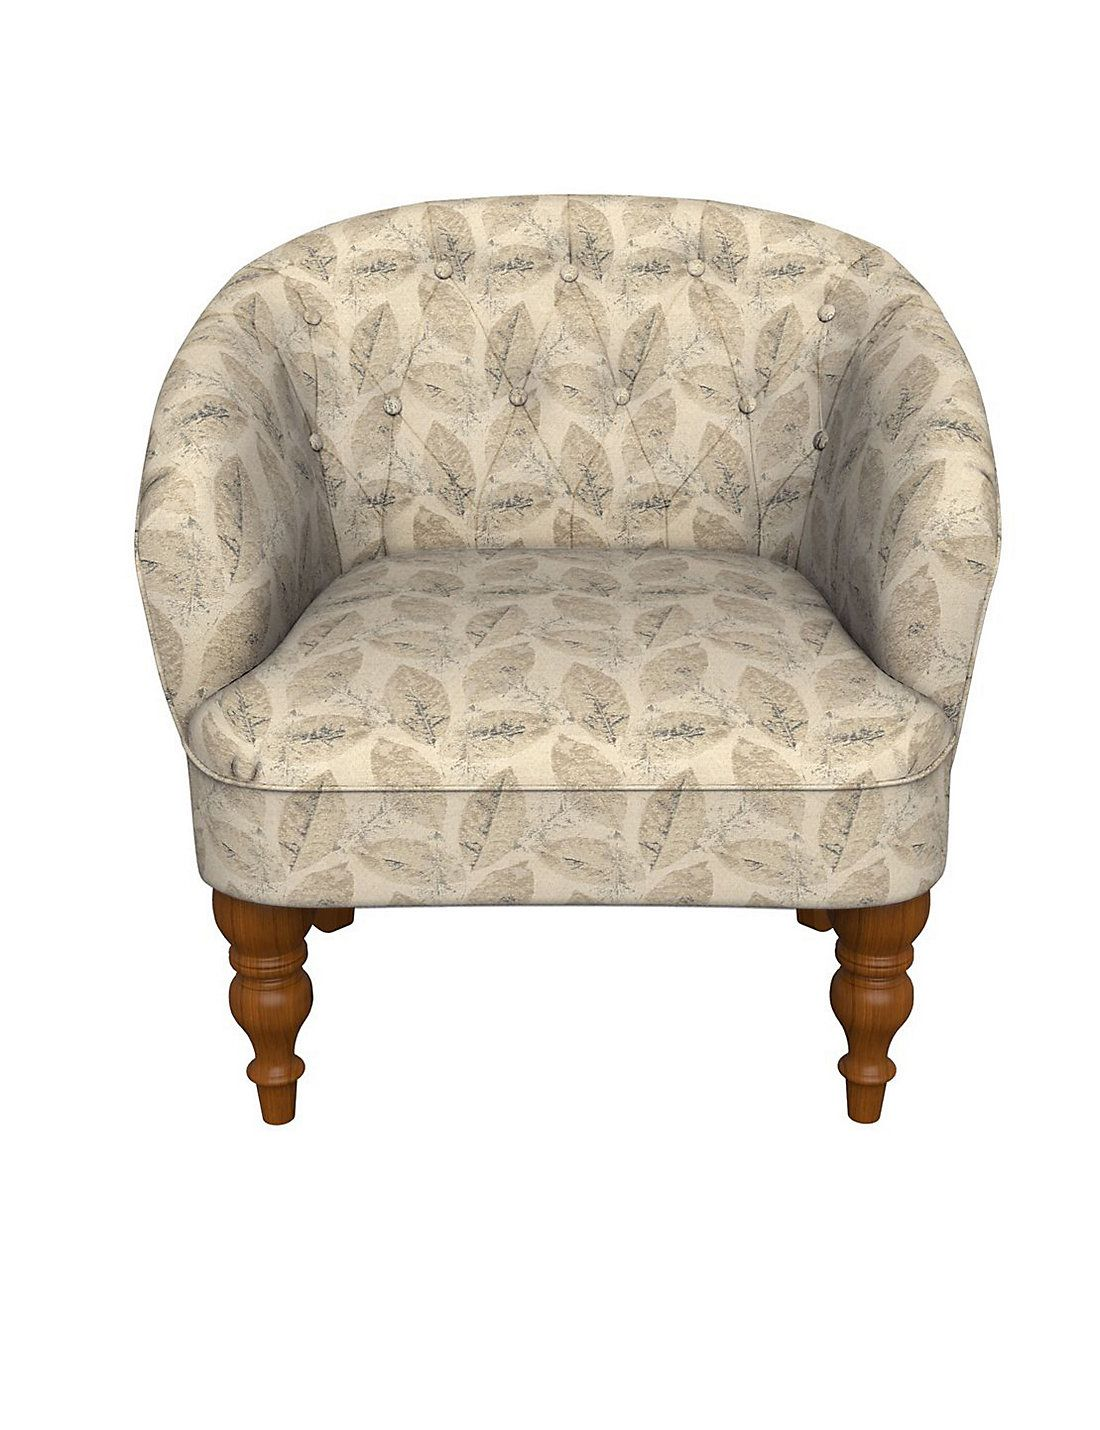 Mersea Armchair - Next Day Delivery | Armchair, Grey ...